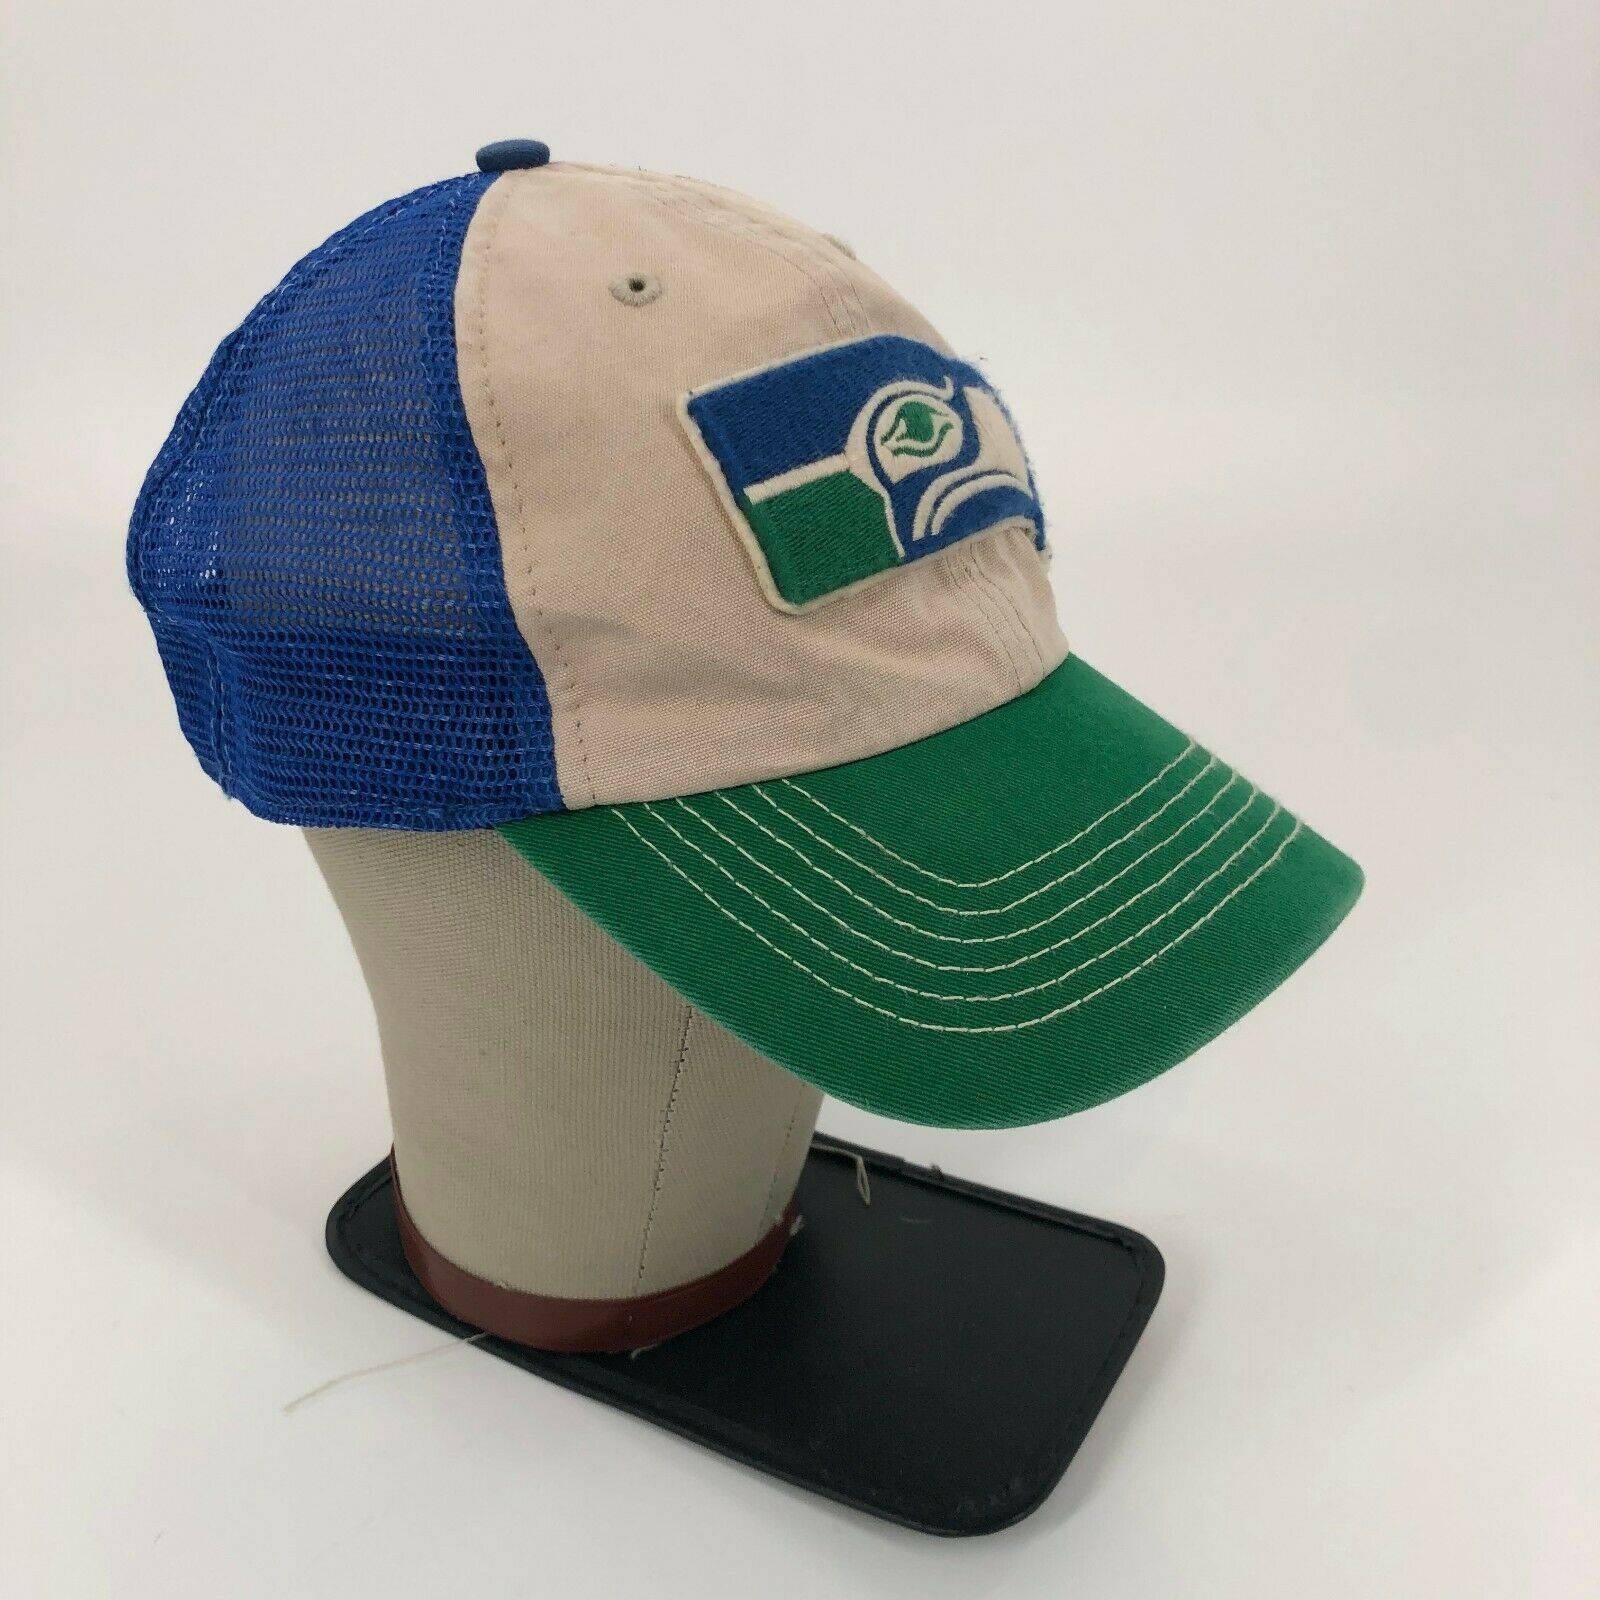 Seattle Seahawks 47 Brand Snap Back Hat